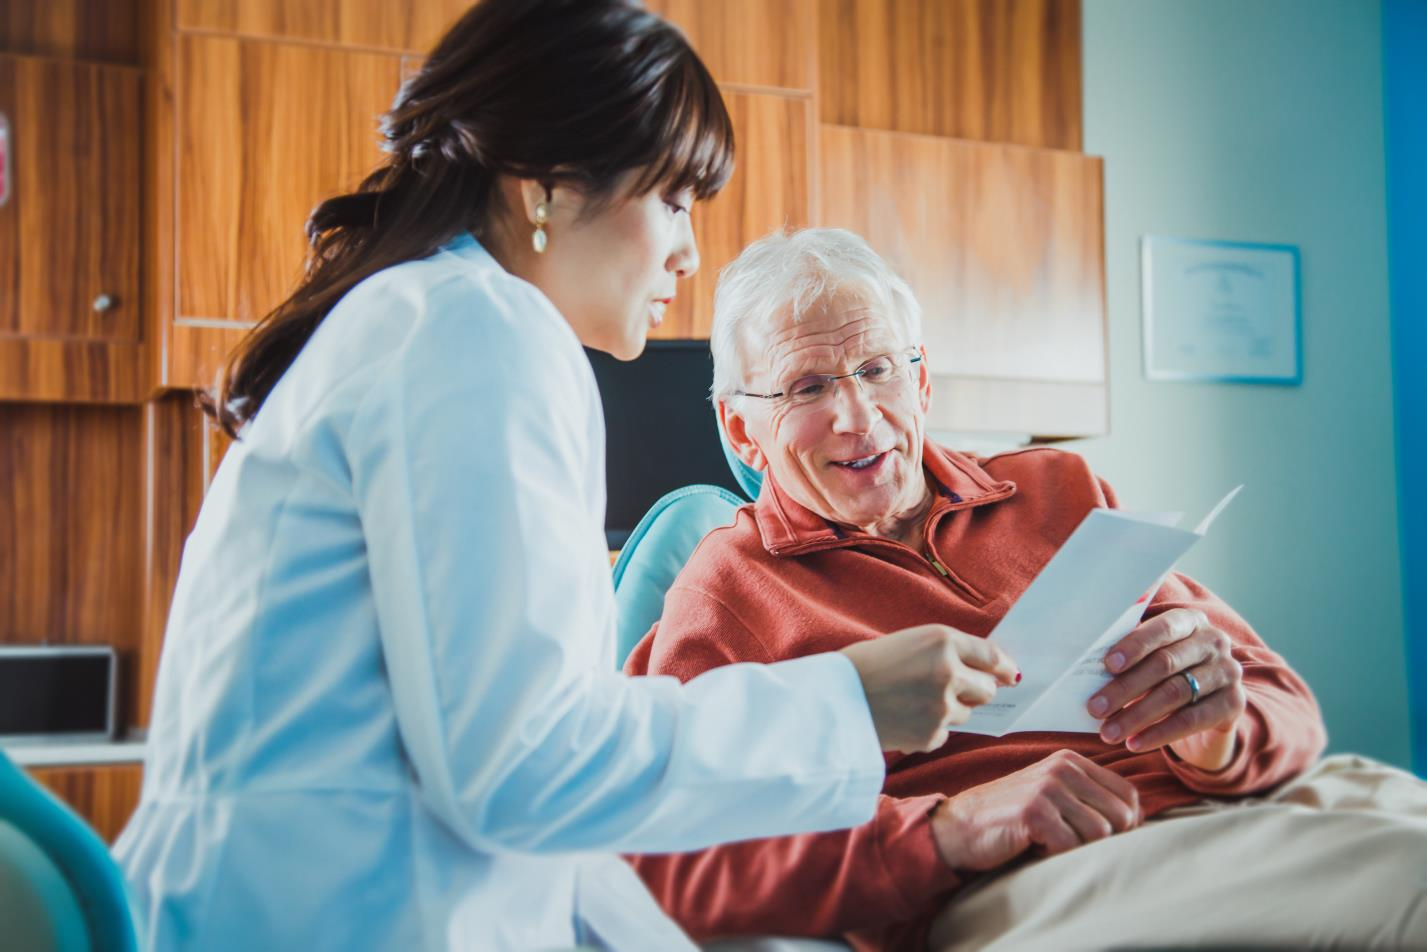 Dental Insurance Still Key for Retirees